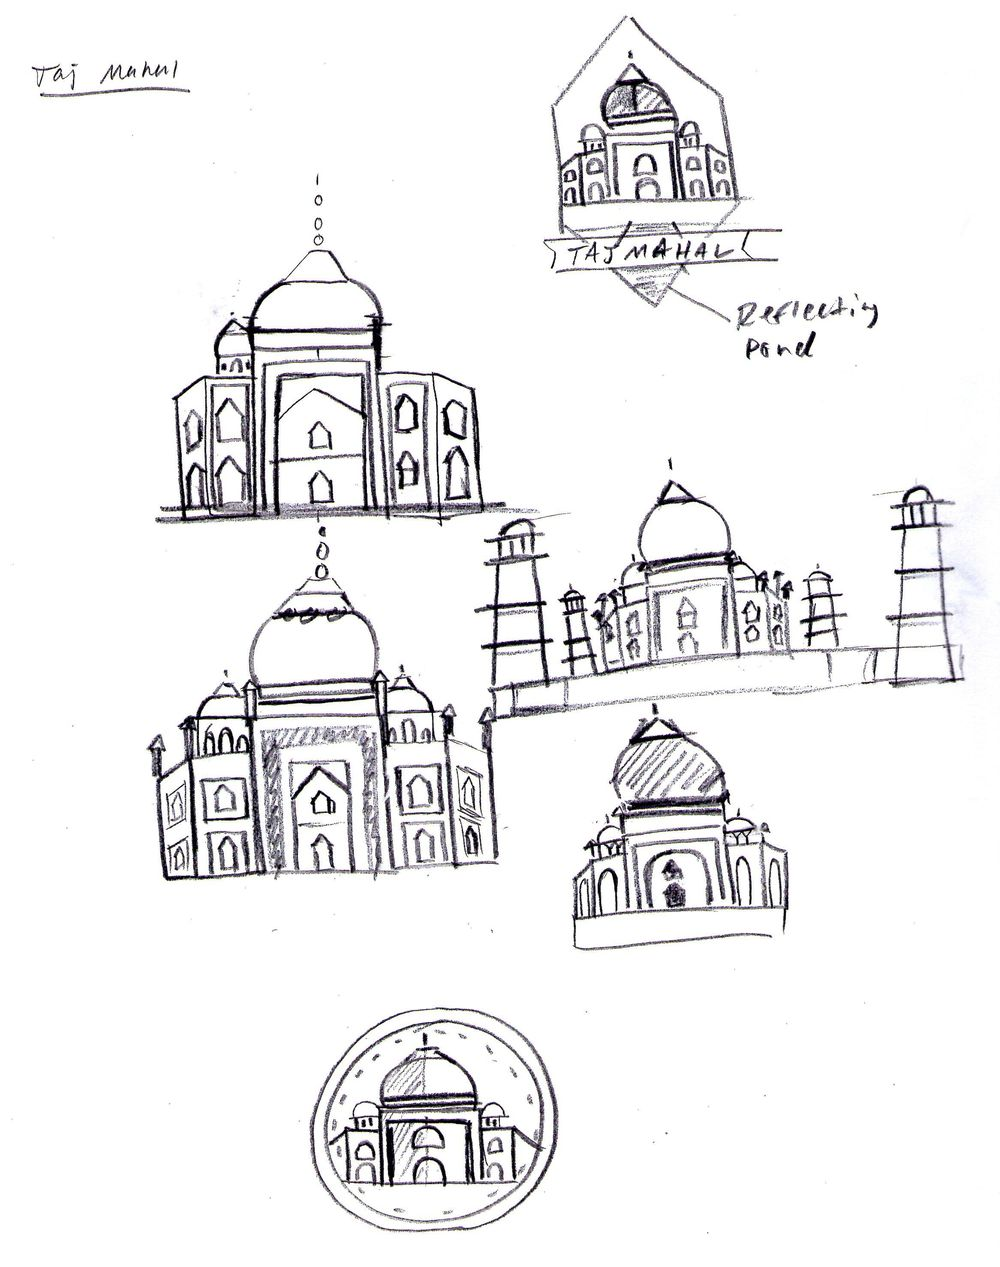 Travel Destinations Through Monuments  - image 3 - student project